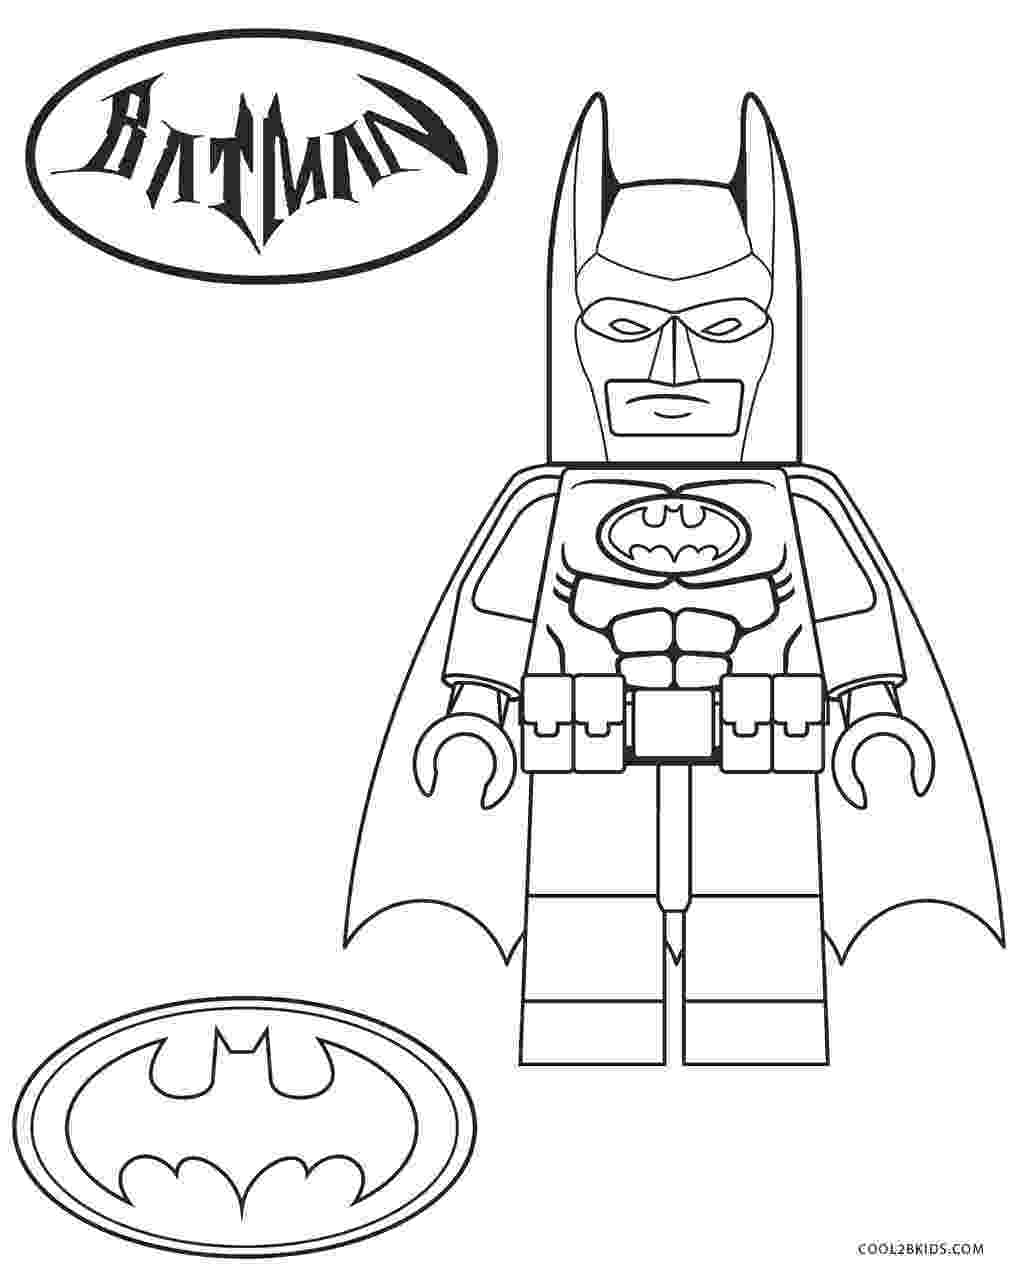 free printable coloring pages lego batman lego batman coloring pages best coloring pages for kids pages batman free coloring printable lego